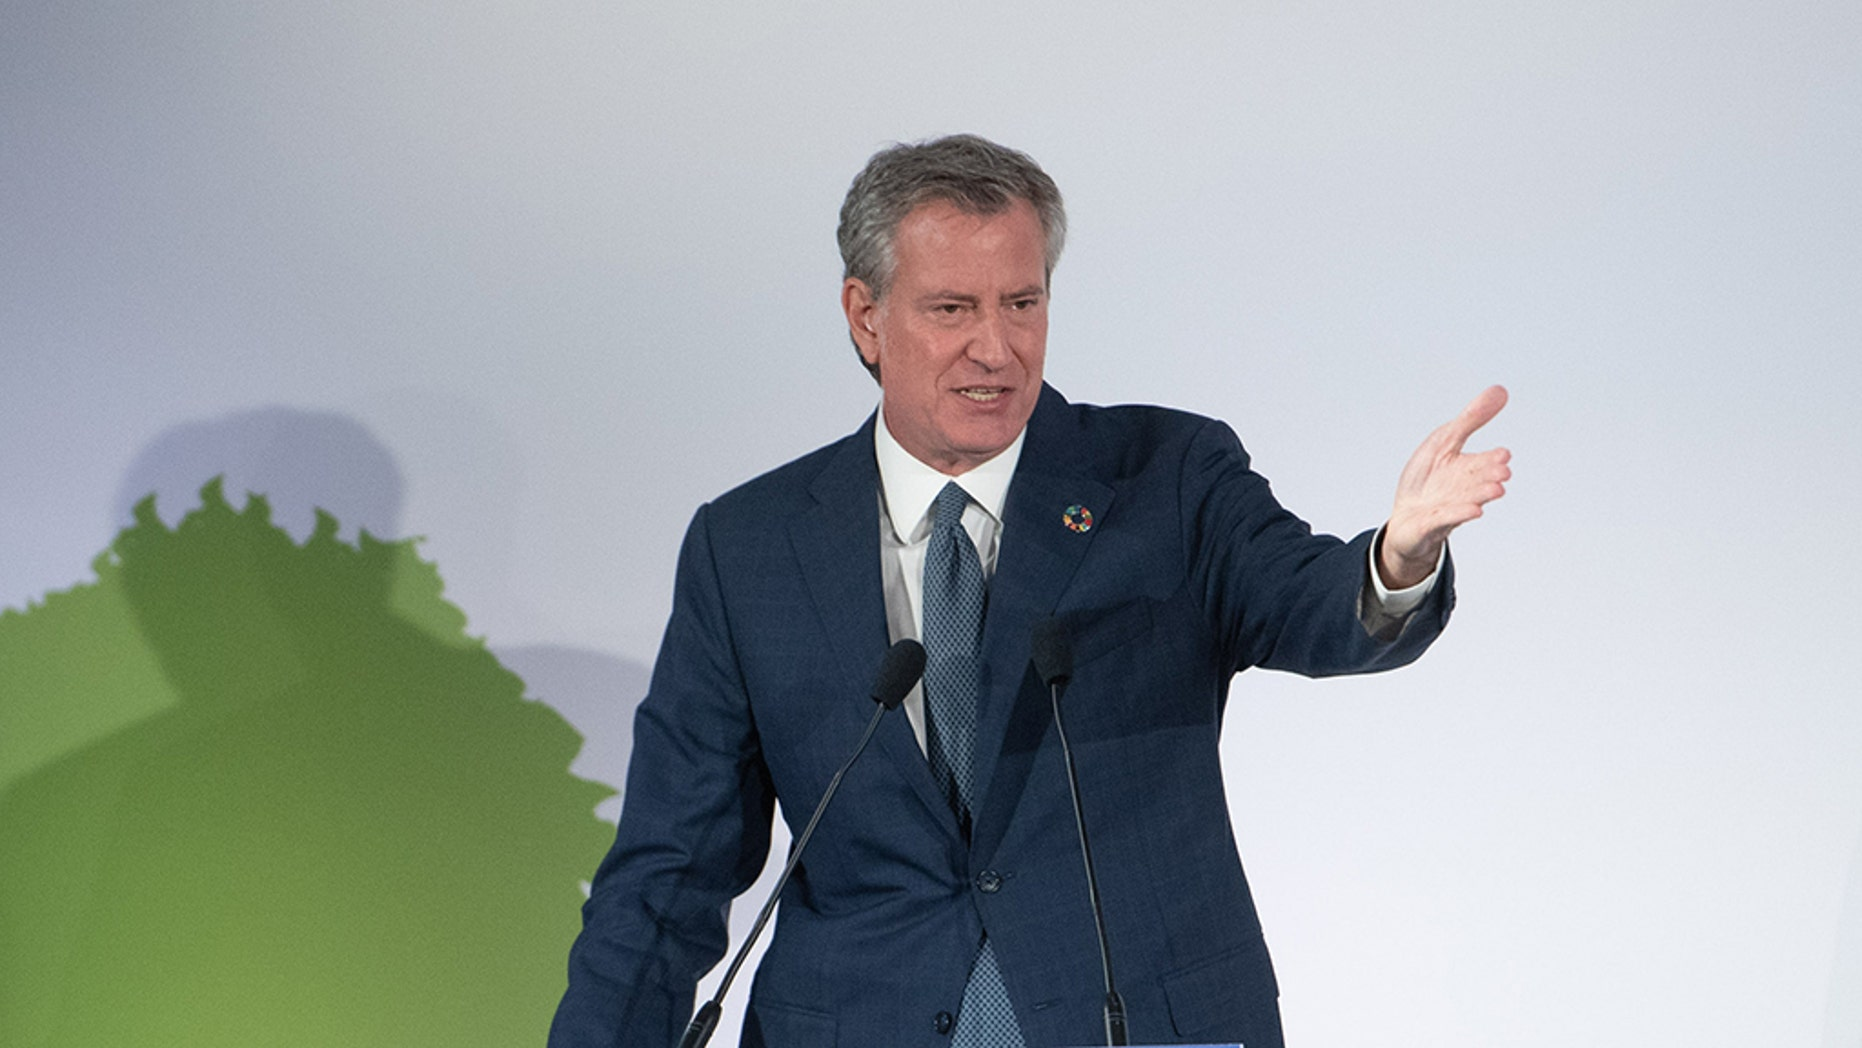 Mayor de Blasio delivers remarks at the Opening Plenary of the World Economic Forum's Sustainable Development Impact Summit in Midtown Manhattan on Monday, September 24, 2018.